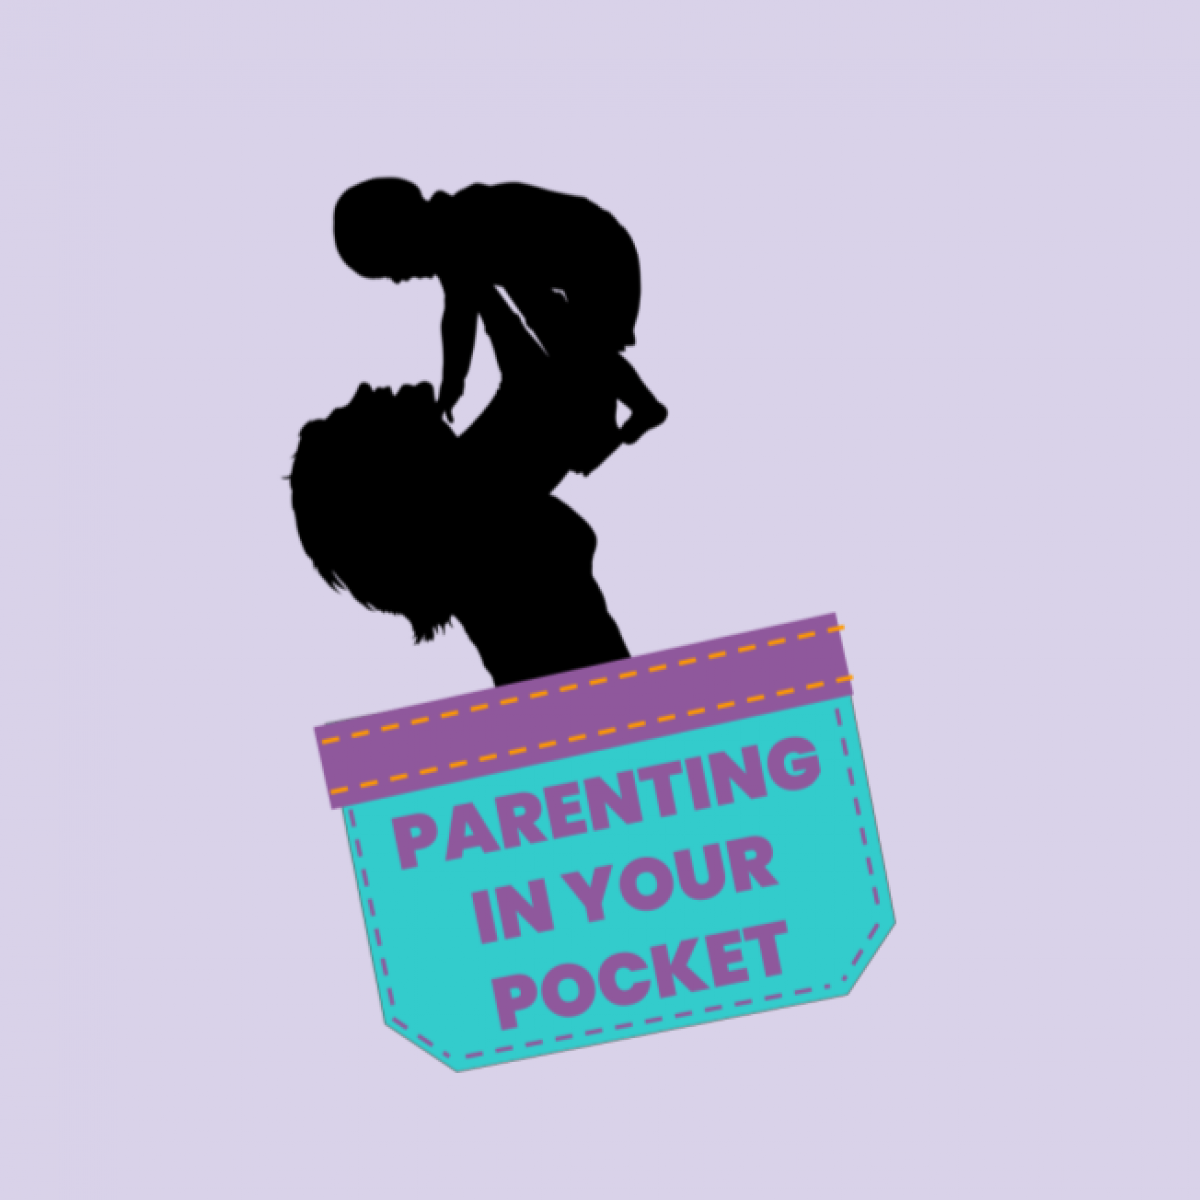 Parenting in your pocket